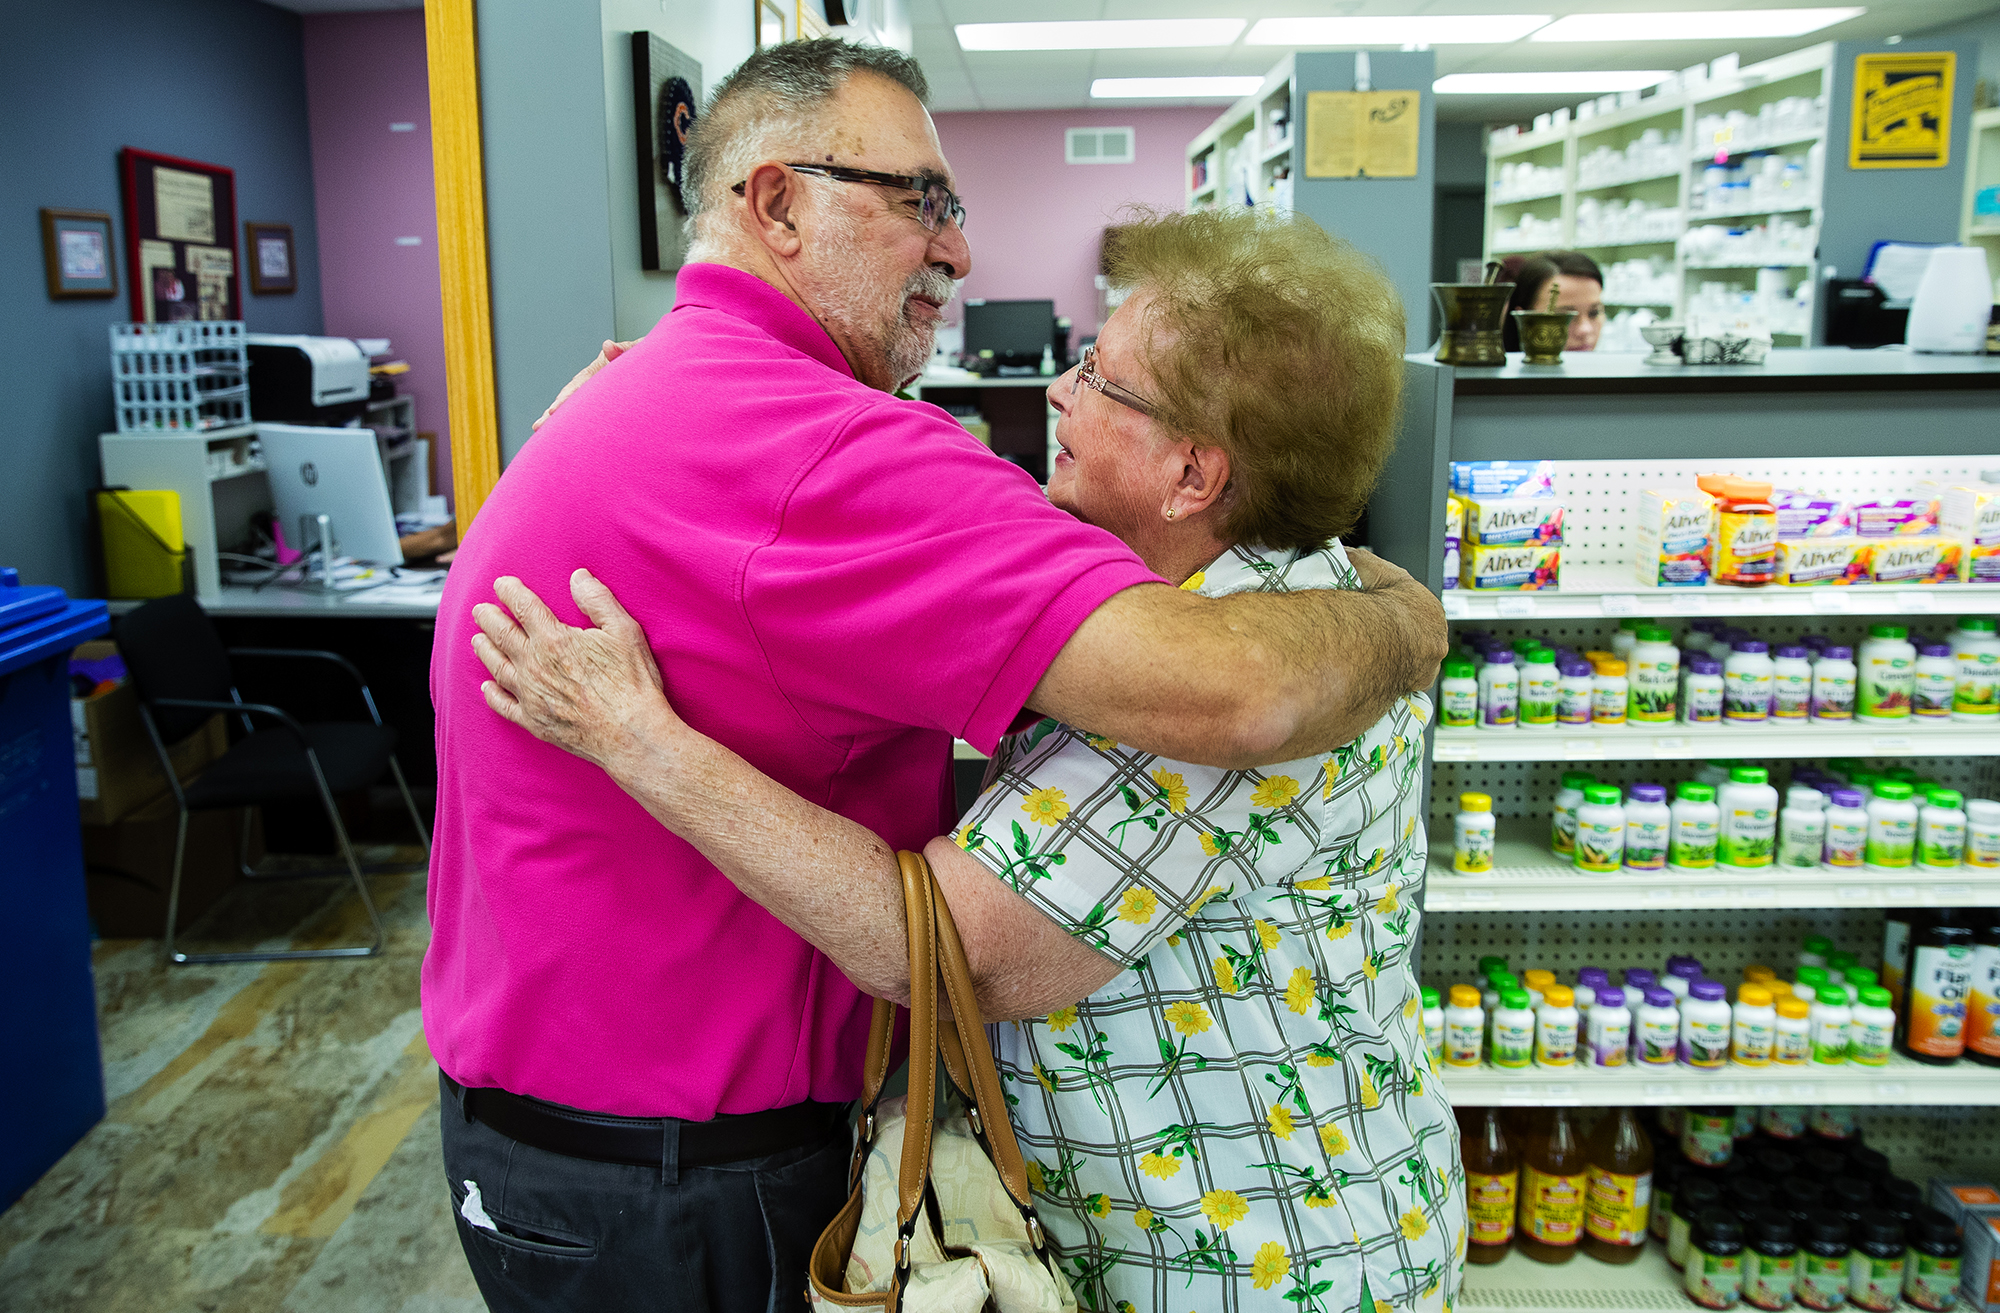 Bruce Stacy, 69, co-owner of Stacy's Family Pharmacy in Lincoln, gets a hug from longtime customer JoAnne Marlin during the last afternoon of operations at the business Wednesday, Aug. 22, 2018. [Ted Schurter/The State Journal-Register]